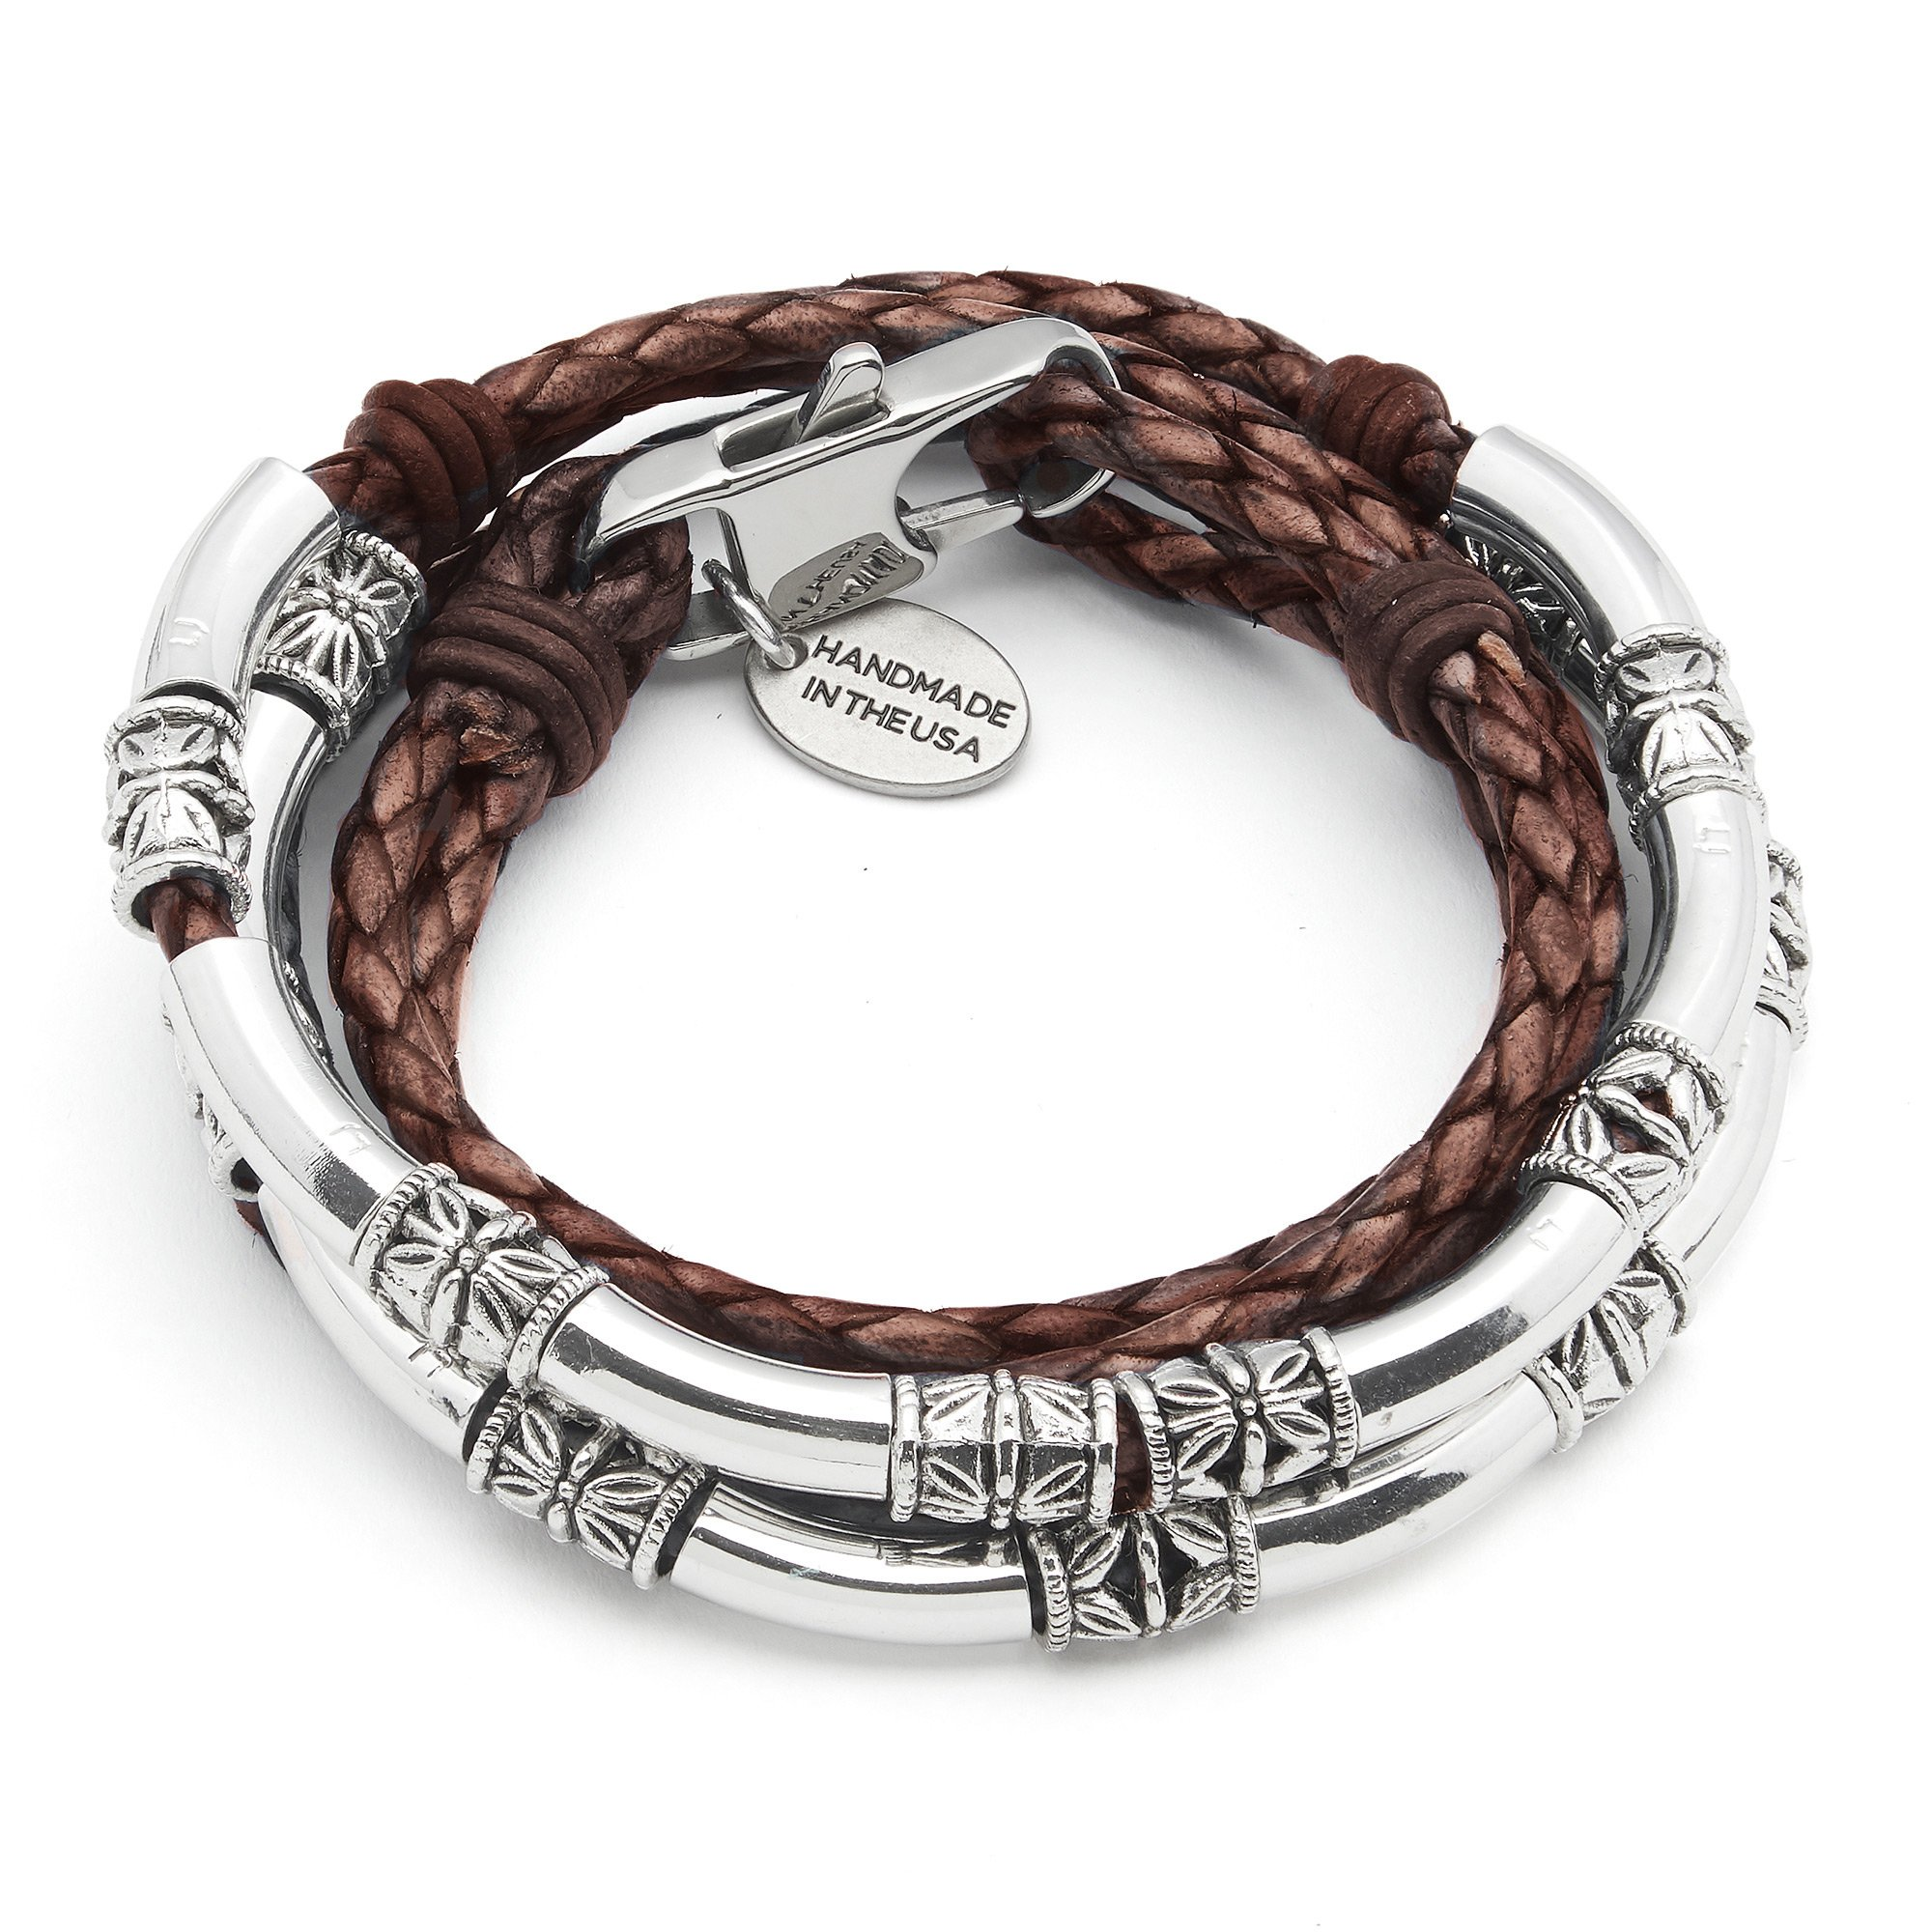 Lizzy James Mini Maxi Silver Plated Braided Leather Wrap Bracelet in Natural Mocha Leather (PETITE) by Lizzy James